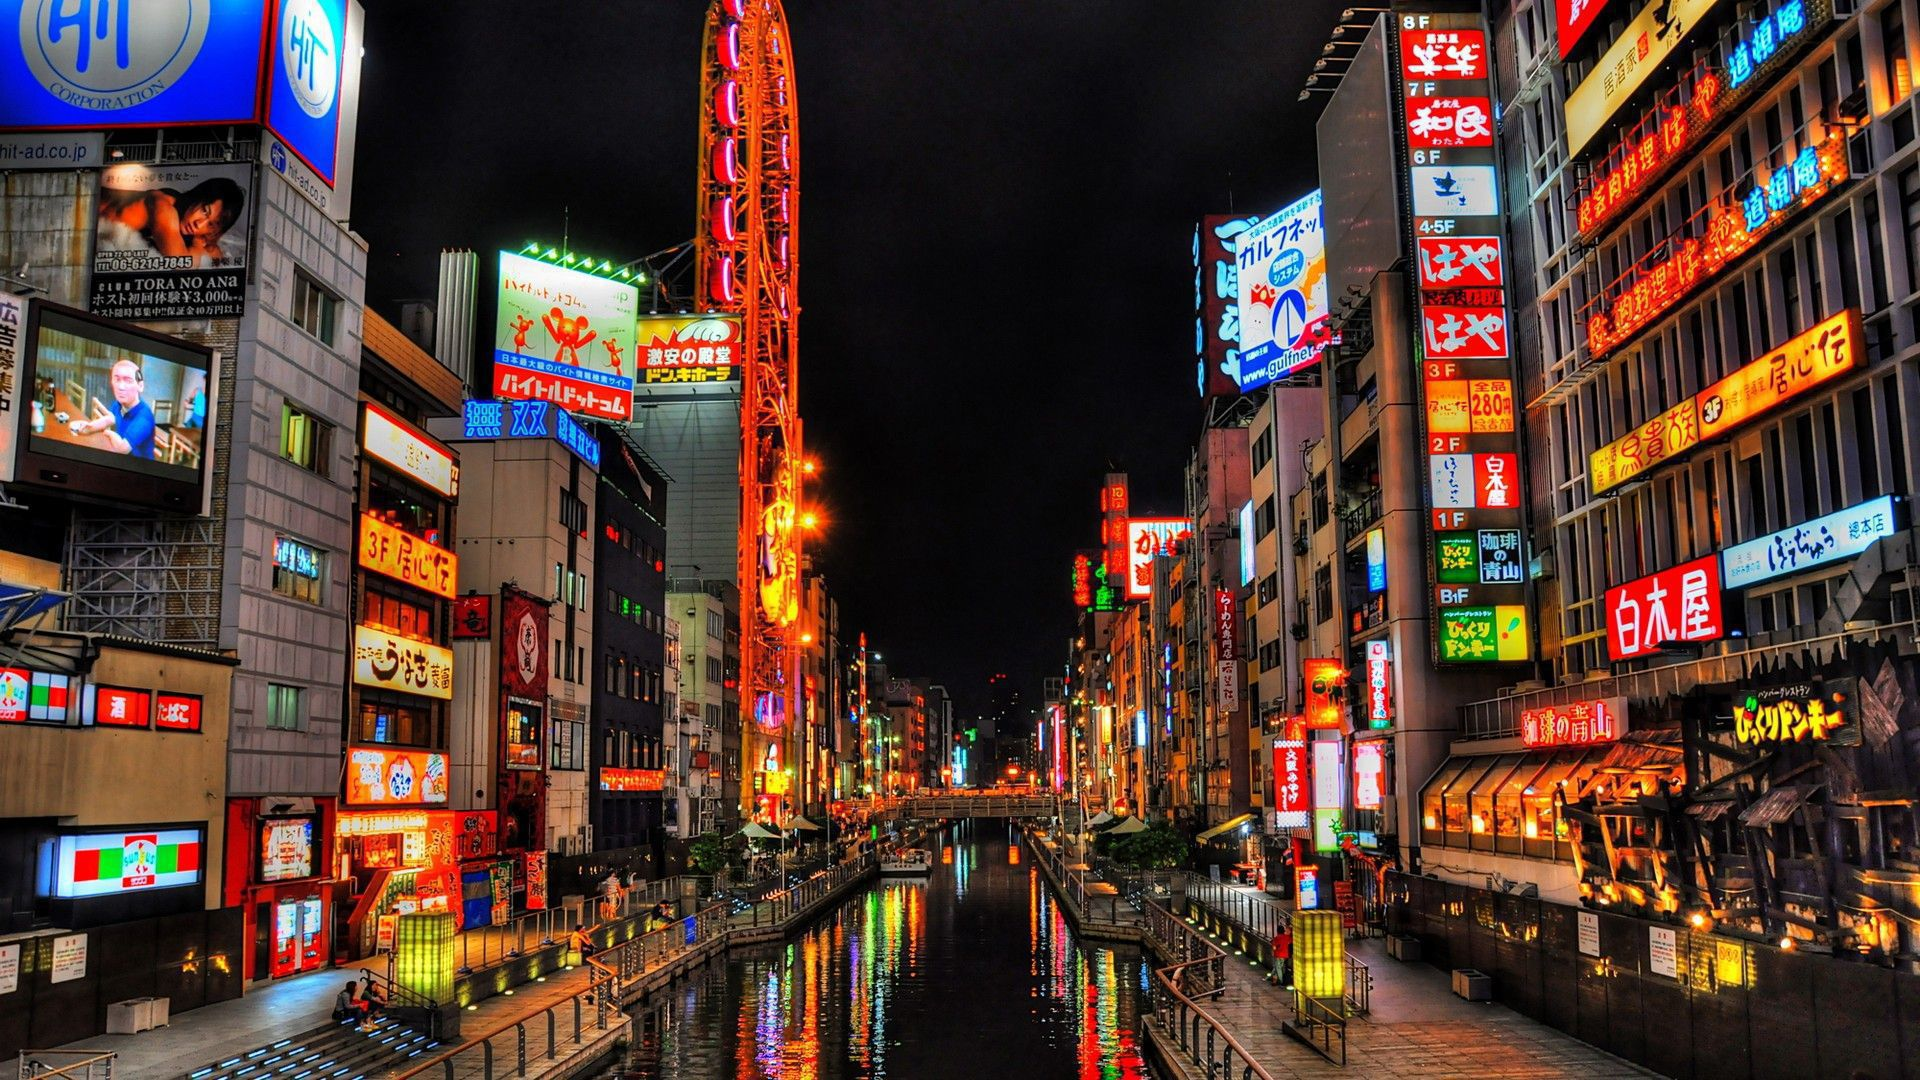 Asia Images